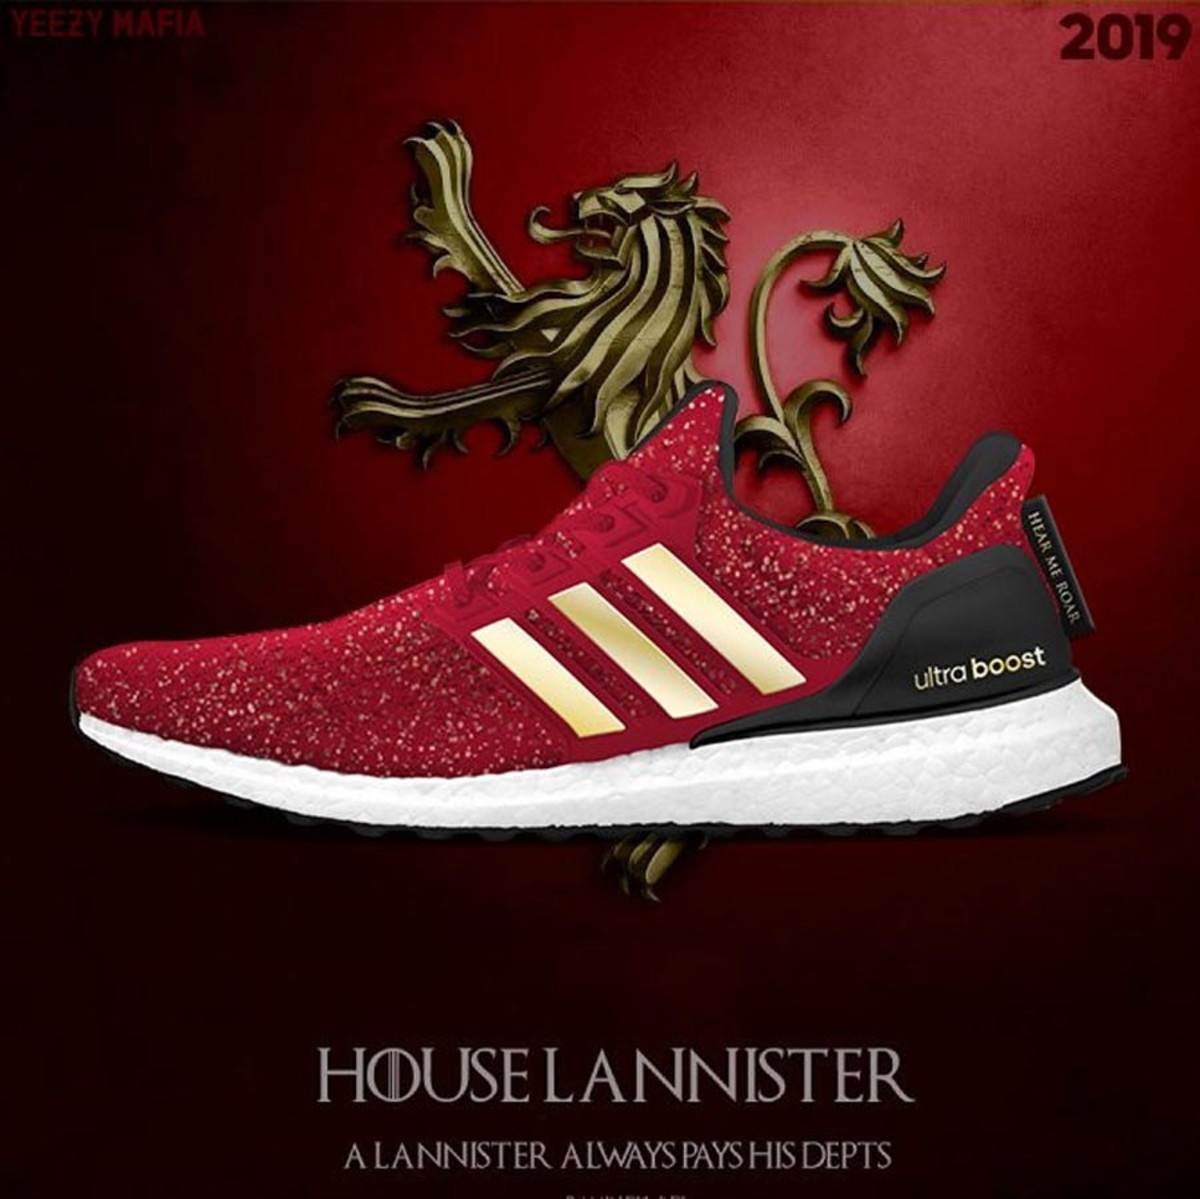 adidas-game-of-thrones-collection-02